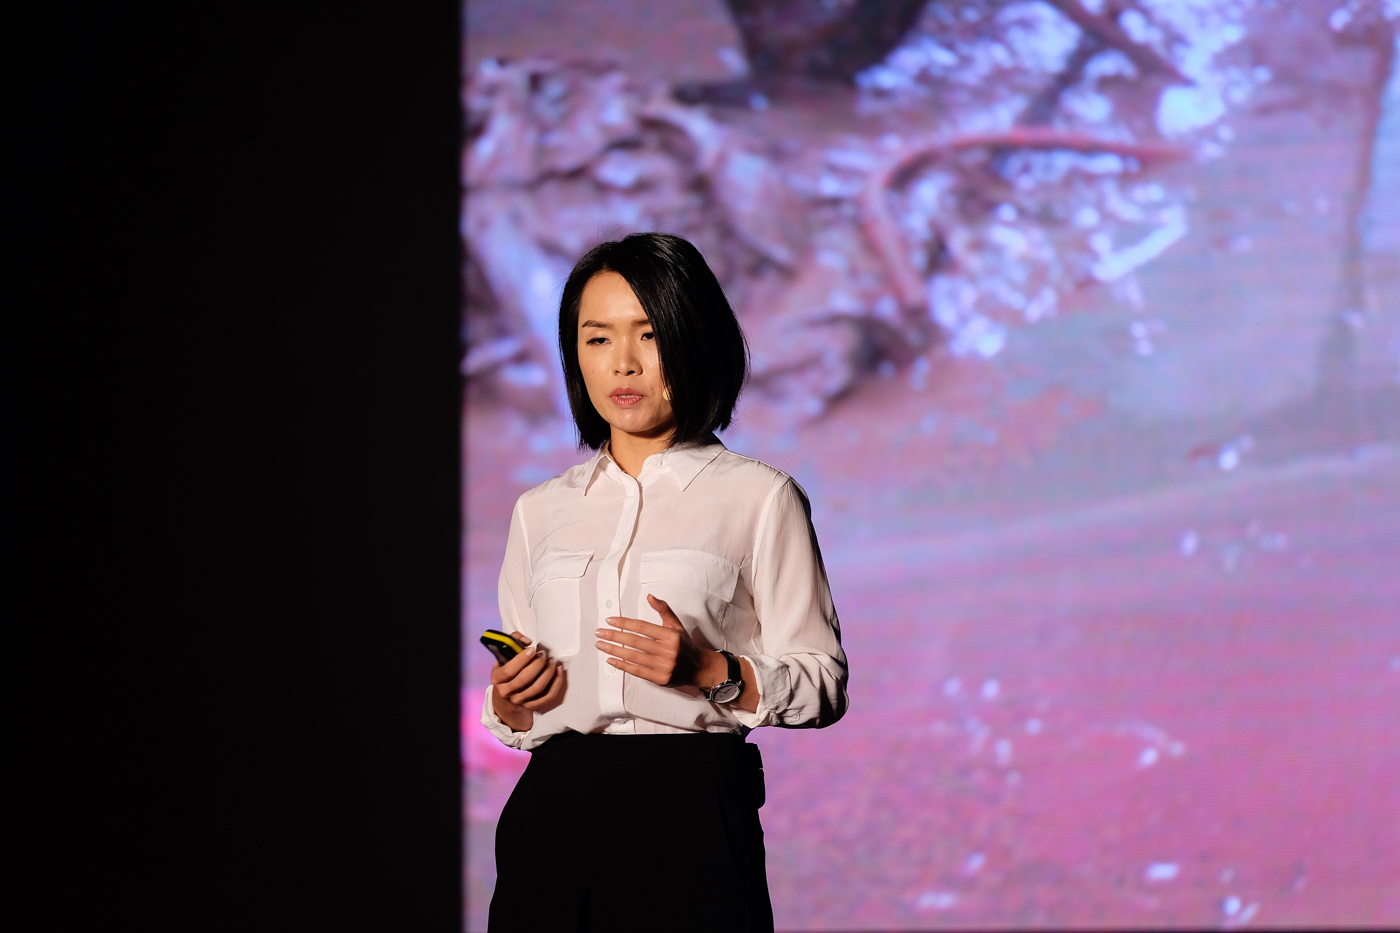 Yanjun Cai: In disasters I see resilience - Picture the aftermath of a natural disaster, you probably see devastated communities, destroyed homes, helpless people. But the researcher and educator Yanjun Cai is offering us an alternative. From her study, she saw resilience and local innovation. people are not only helping themselves but also helping the others.